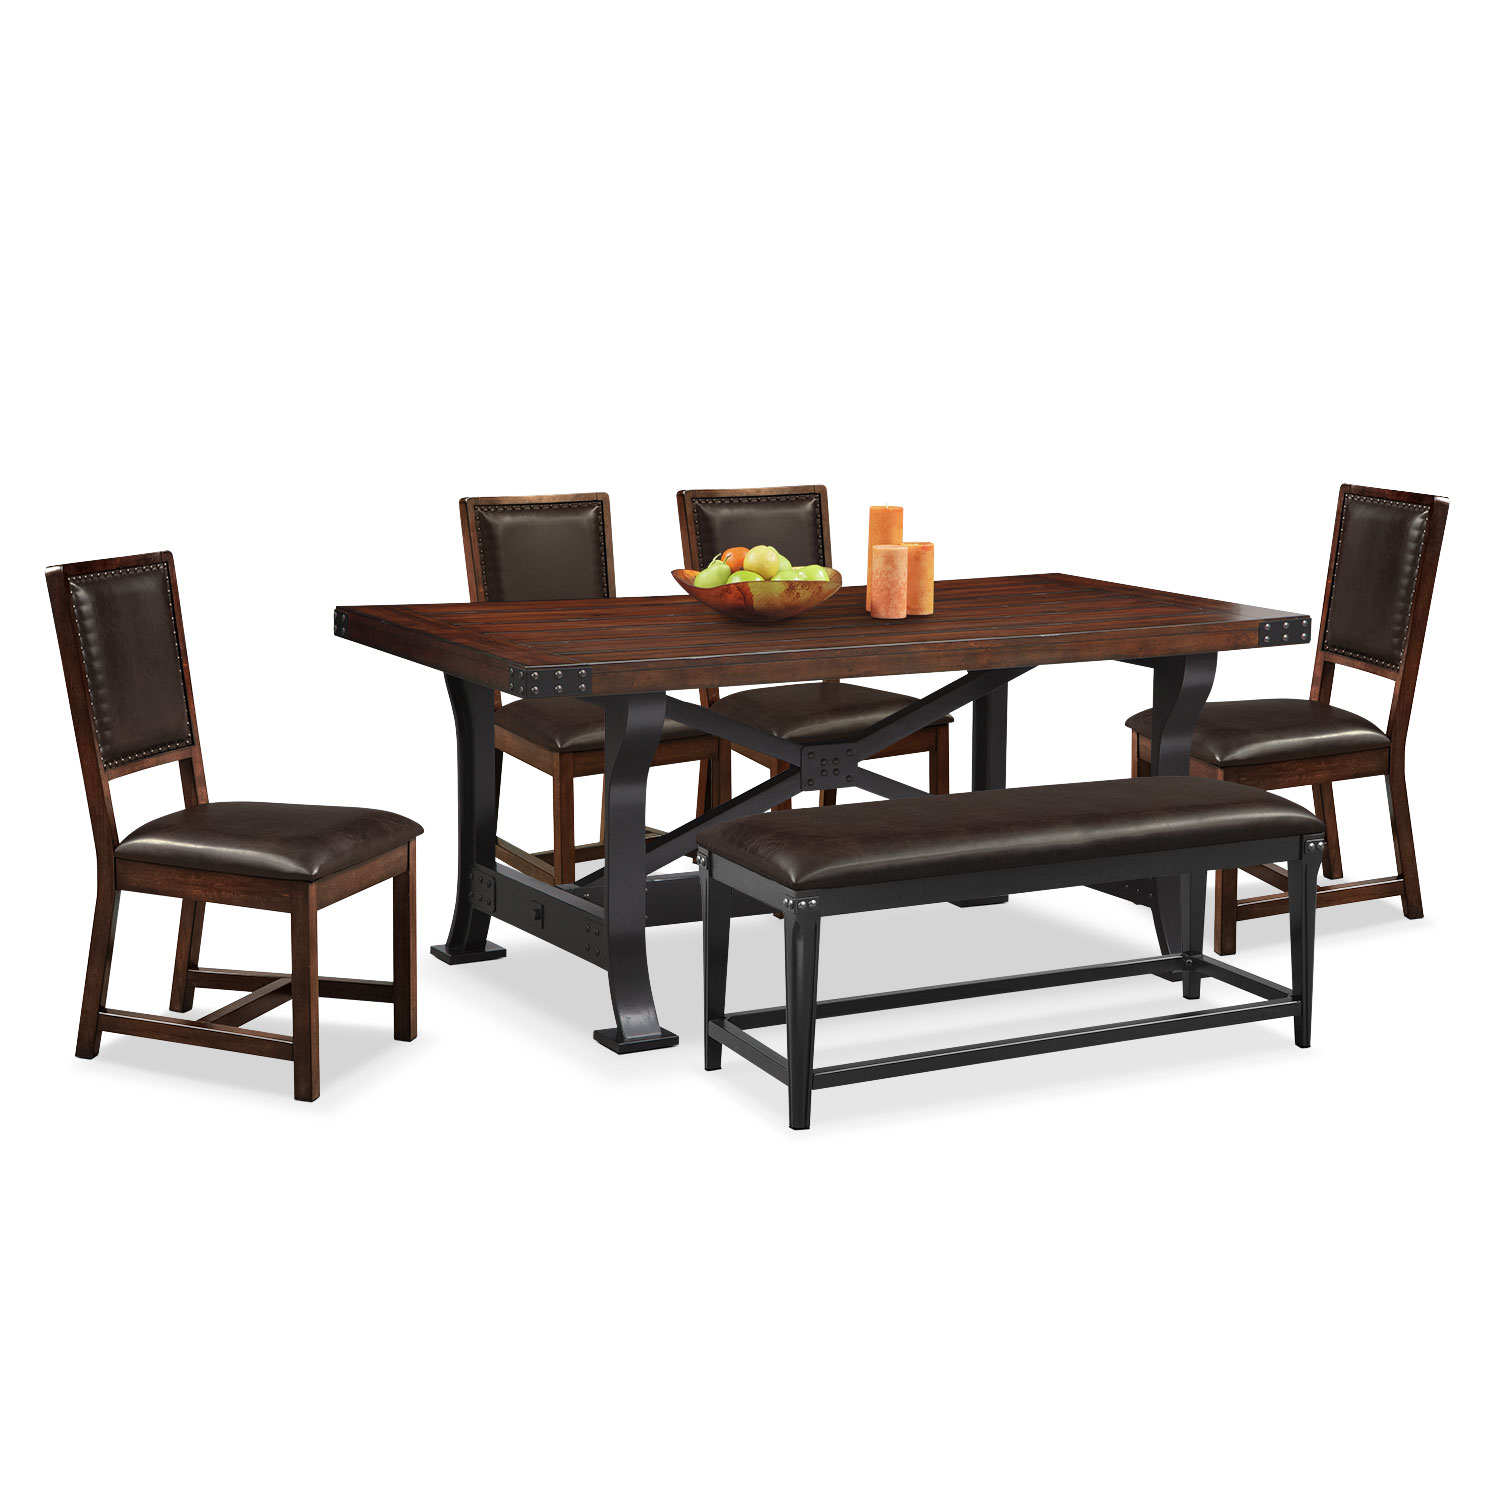 Dining Room Furniture - Newcastle Standard Height 6 Pc. Dining Room